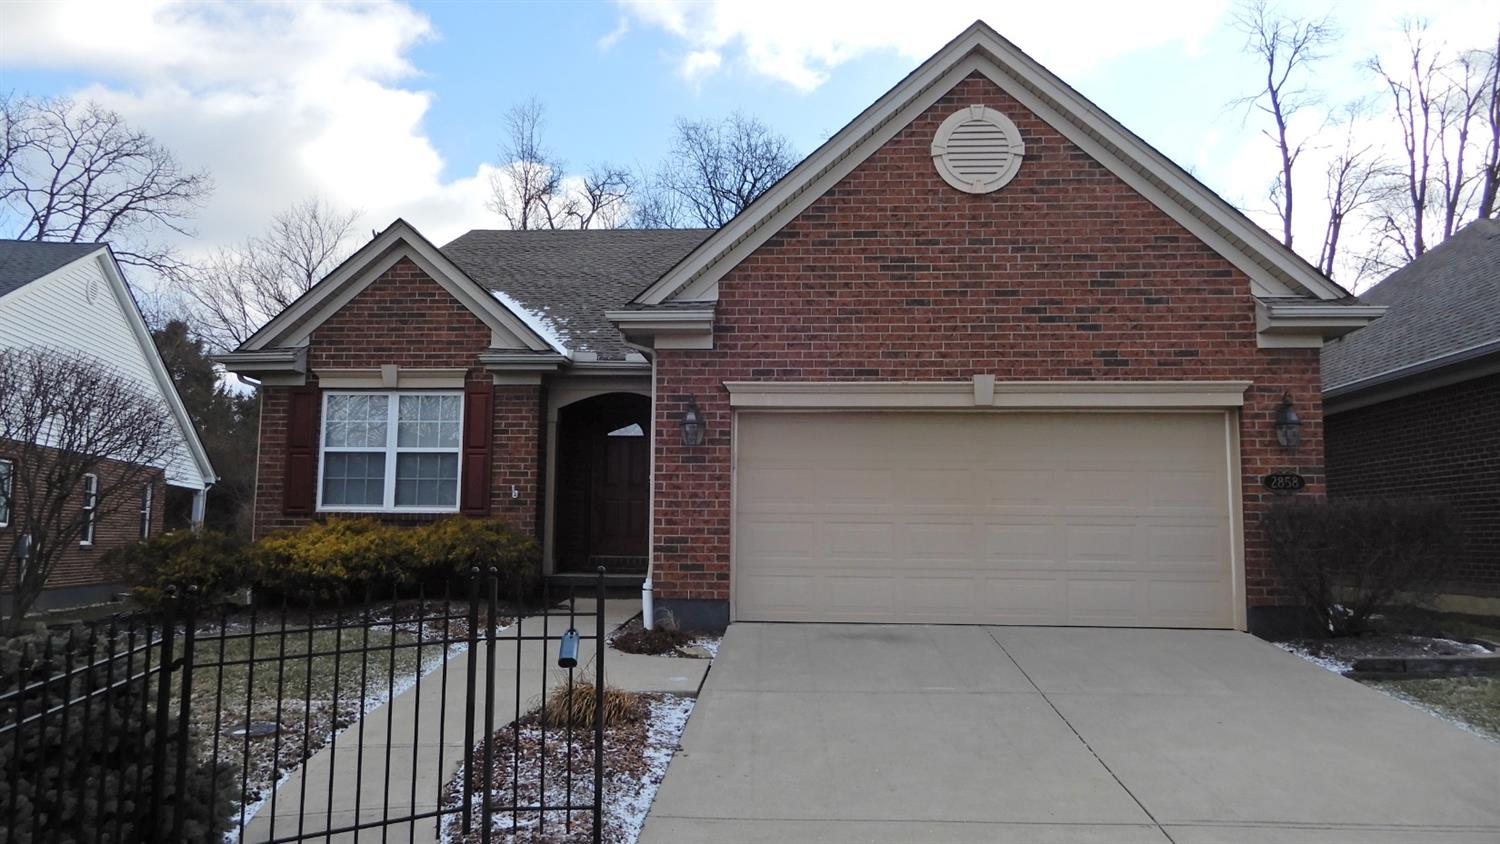 Property for sale at 2858 Parkwalk Drive, Green Twp,  OH 45239